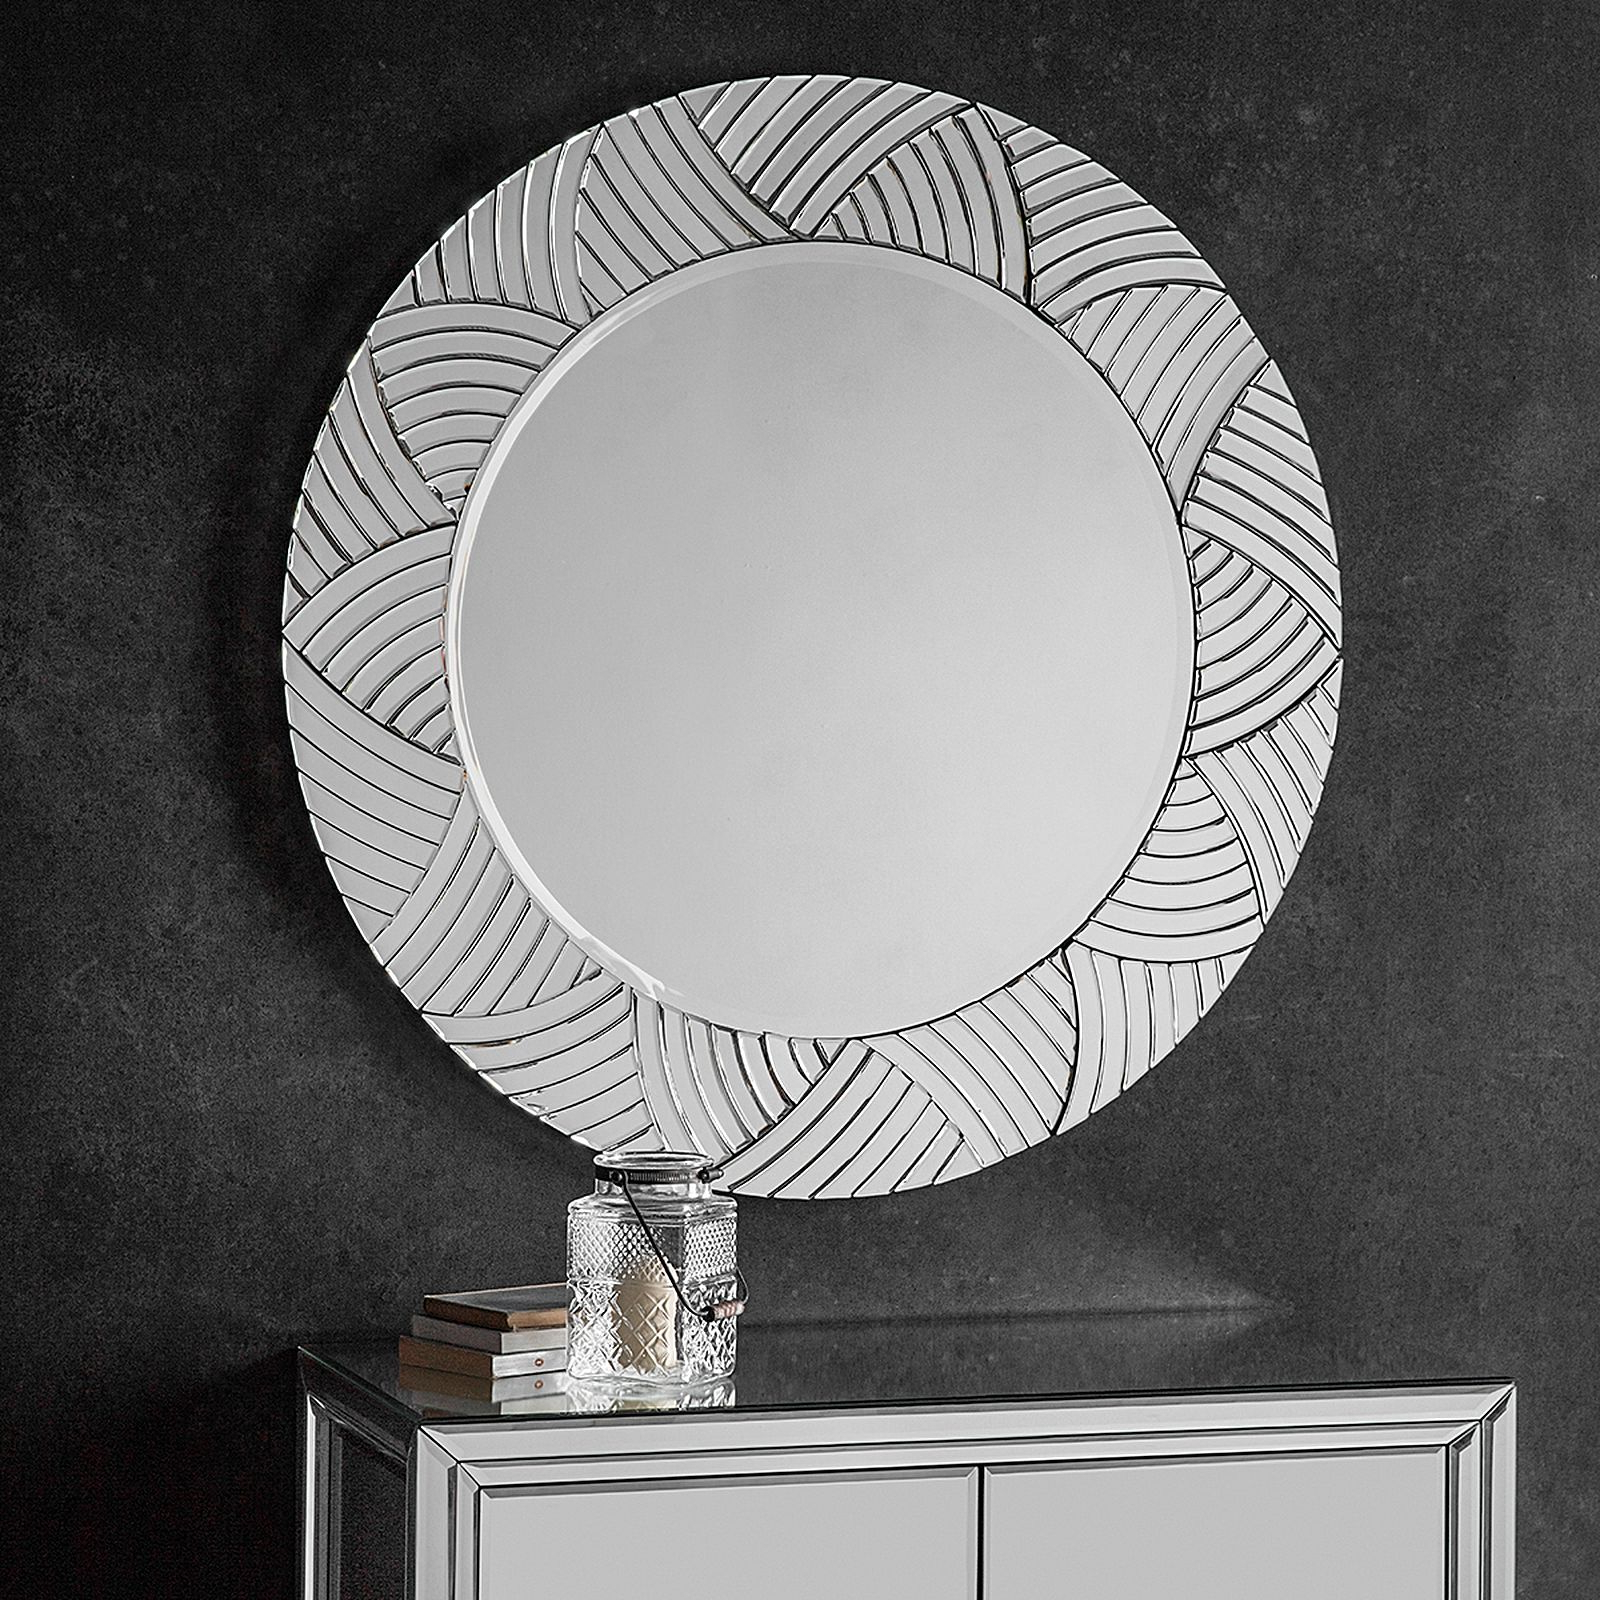 Most Recent Pearson Round Wall Mirror Within Circle Wall Mirrors (View 16 of 20)